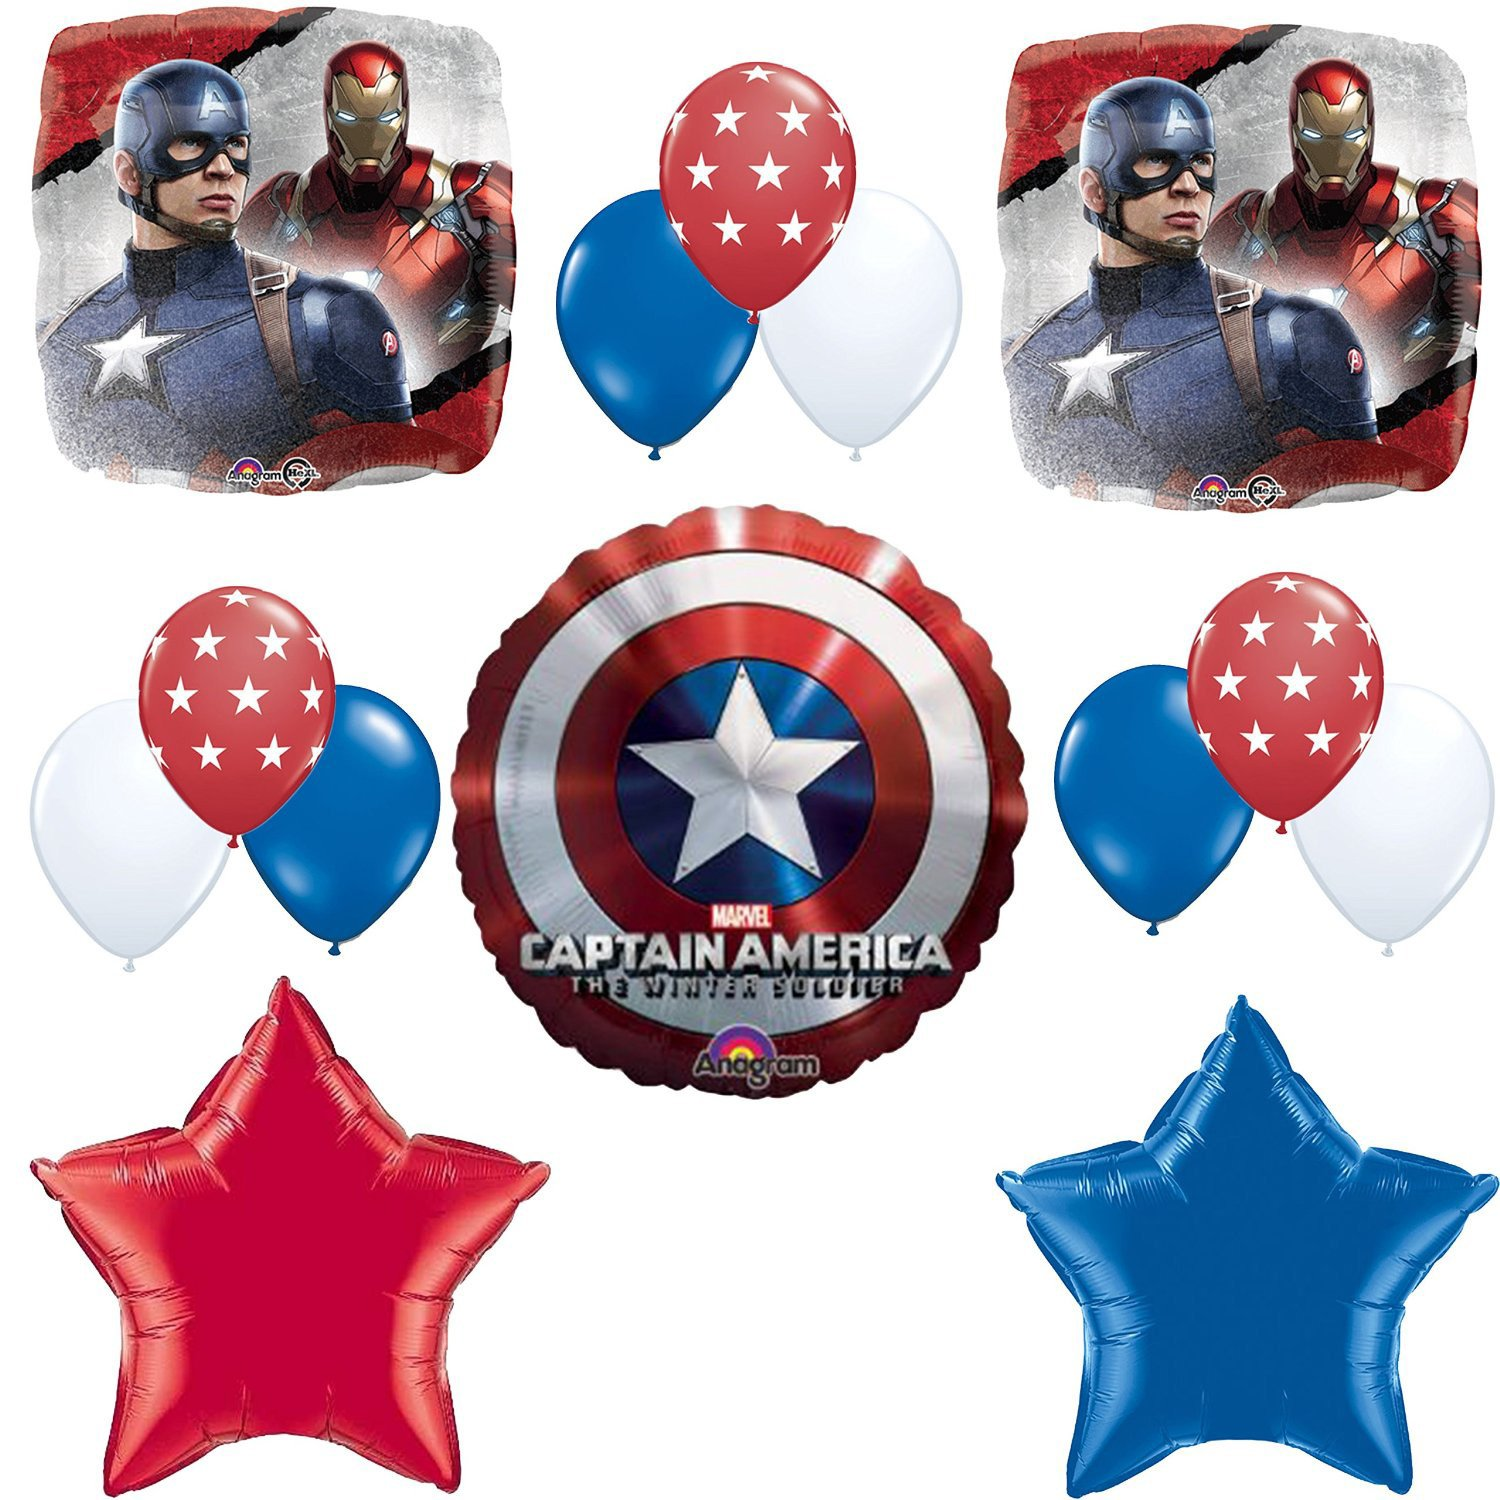 Captain America Birthday Party Balloon Decoration Kit by Mayflower Products